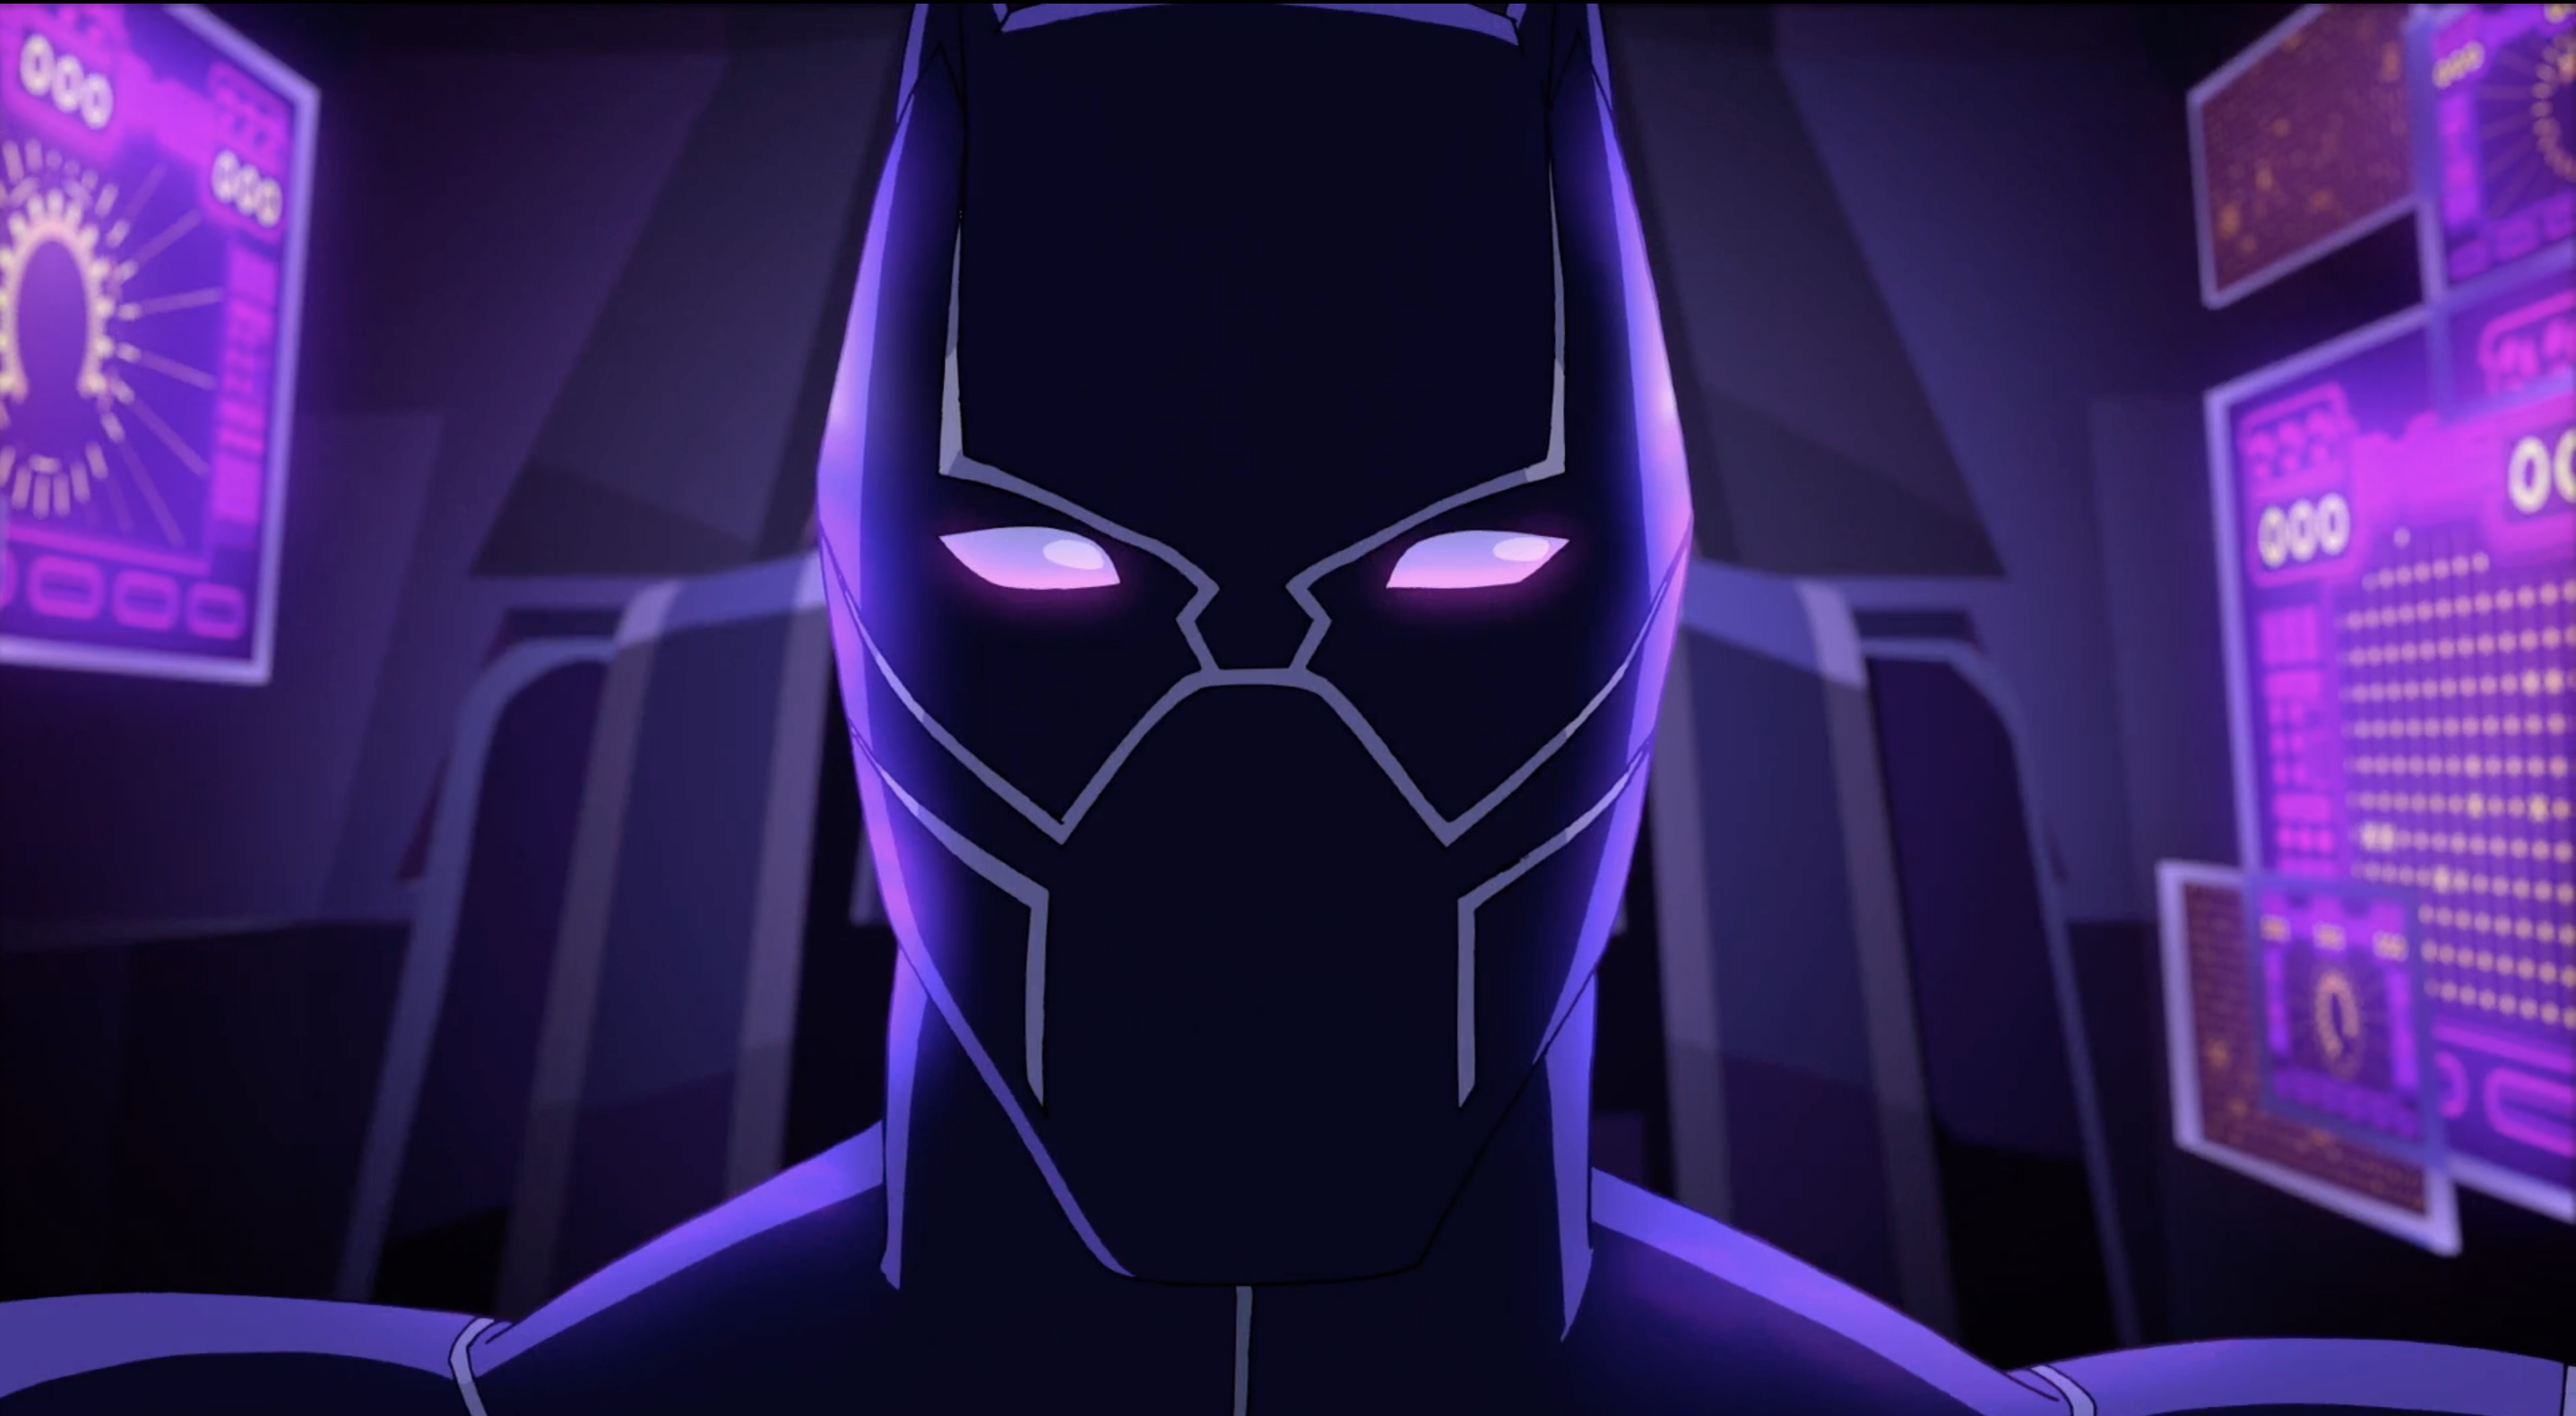 BLACK PANTHER's QUEST Trailer — Disney XD's AVENGERS